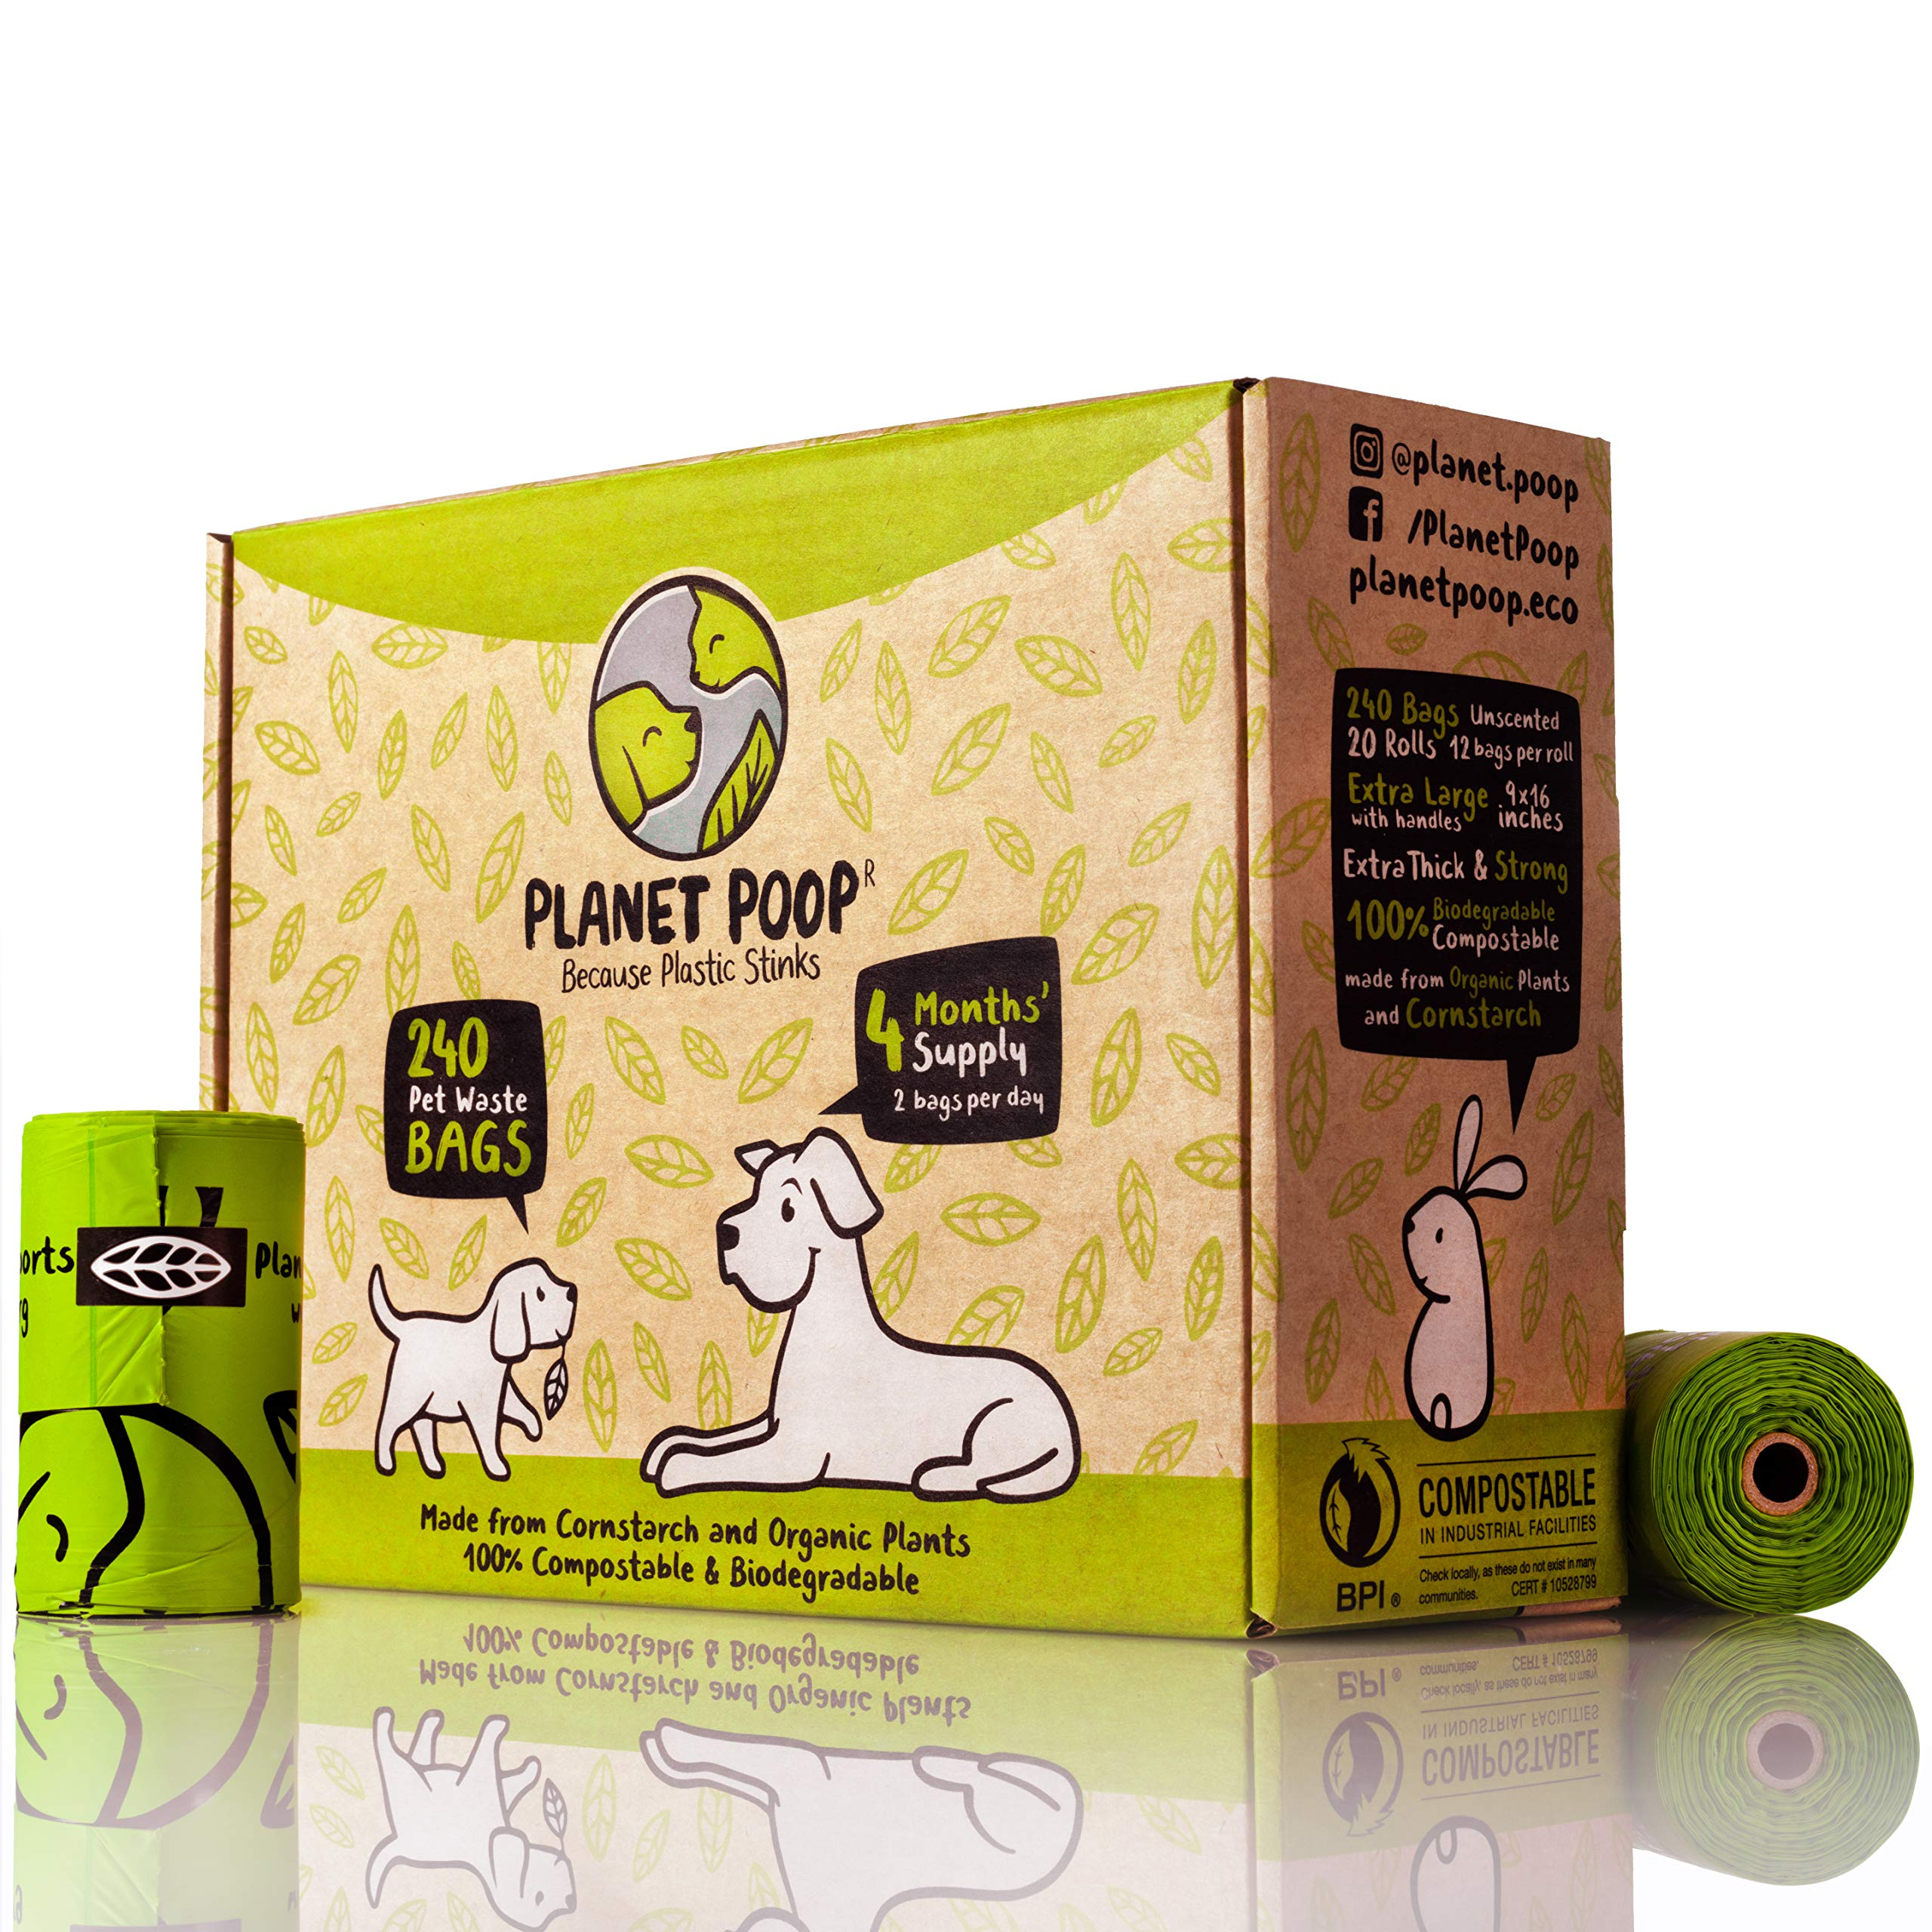 Compostable Biodegradable Dog Poop Bags Unscented - Large 9 x 16 Inches with Handles - Thick, Leak Proof, Plant Based, Pet Waste Bags - Highest Rated ASTM D6400 - Supports Dog Rescue by PLANET POOP